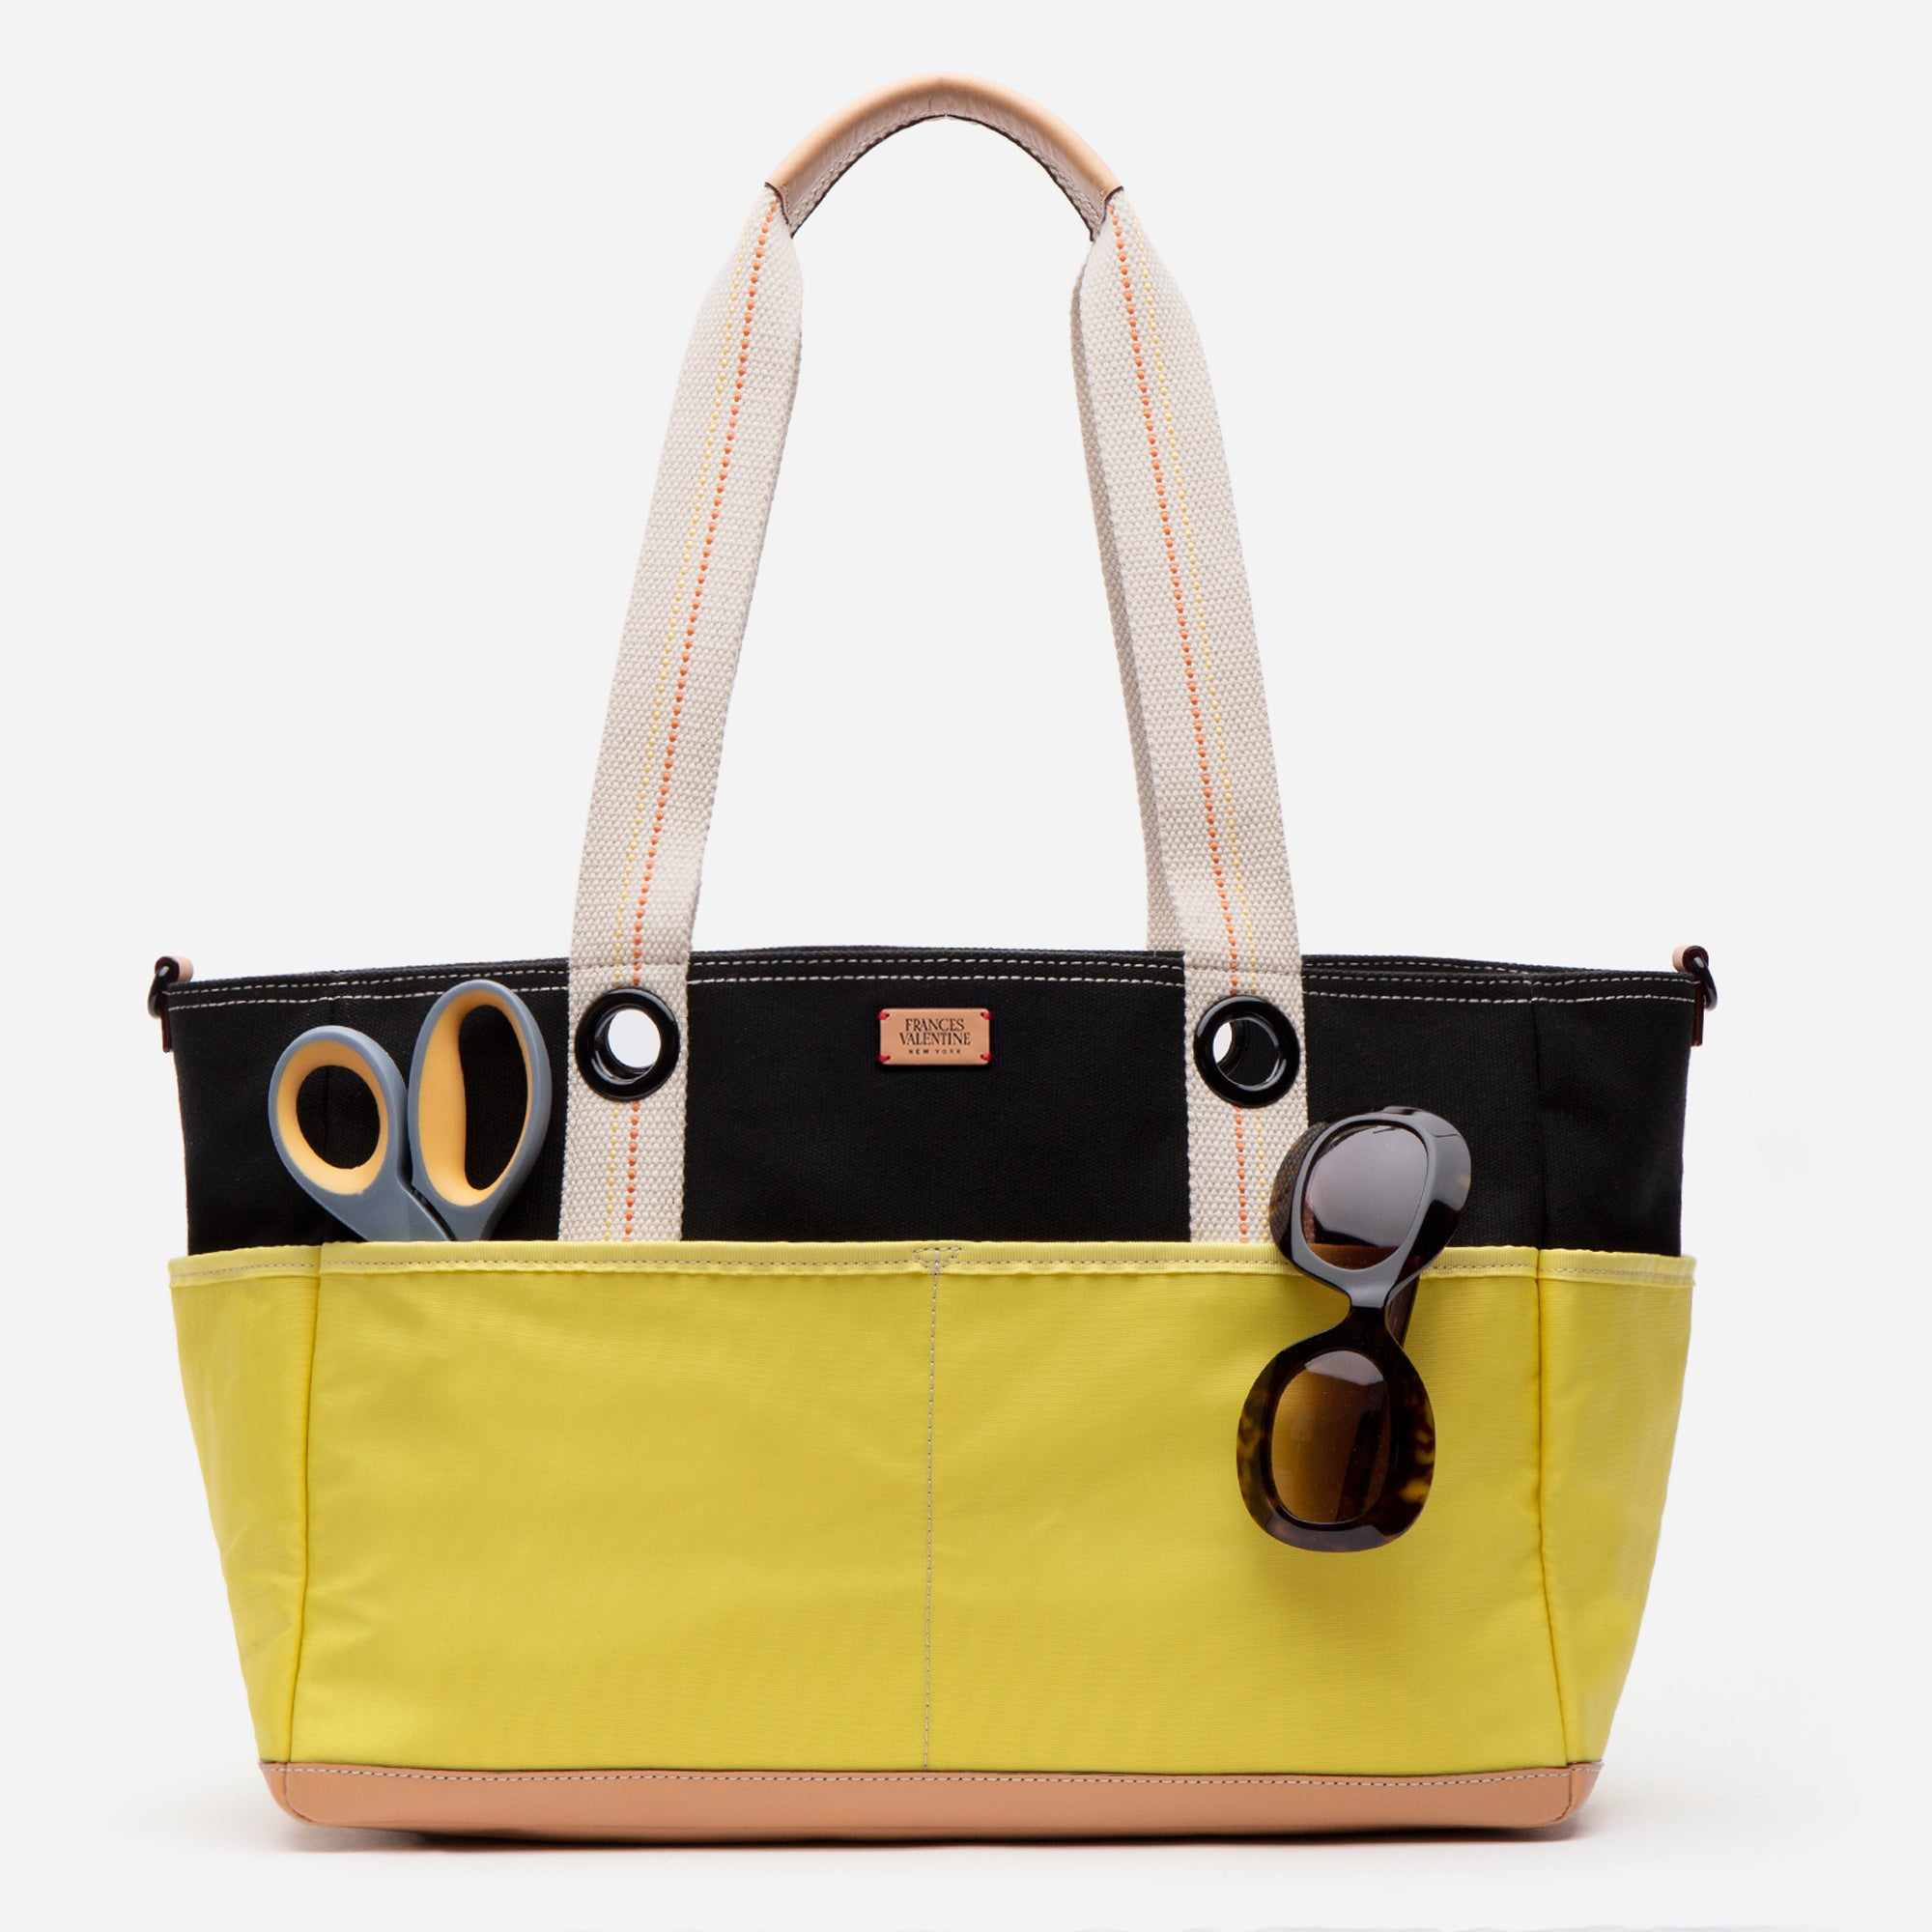 Gardening Canvas Tote Black Yellow - Frances Valentine